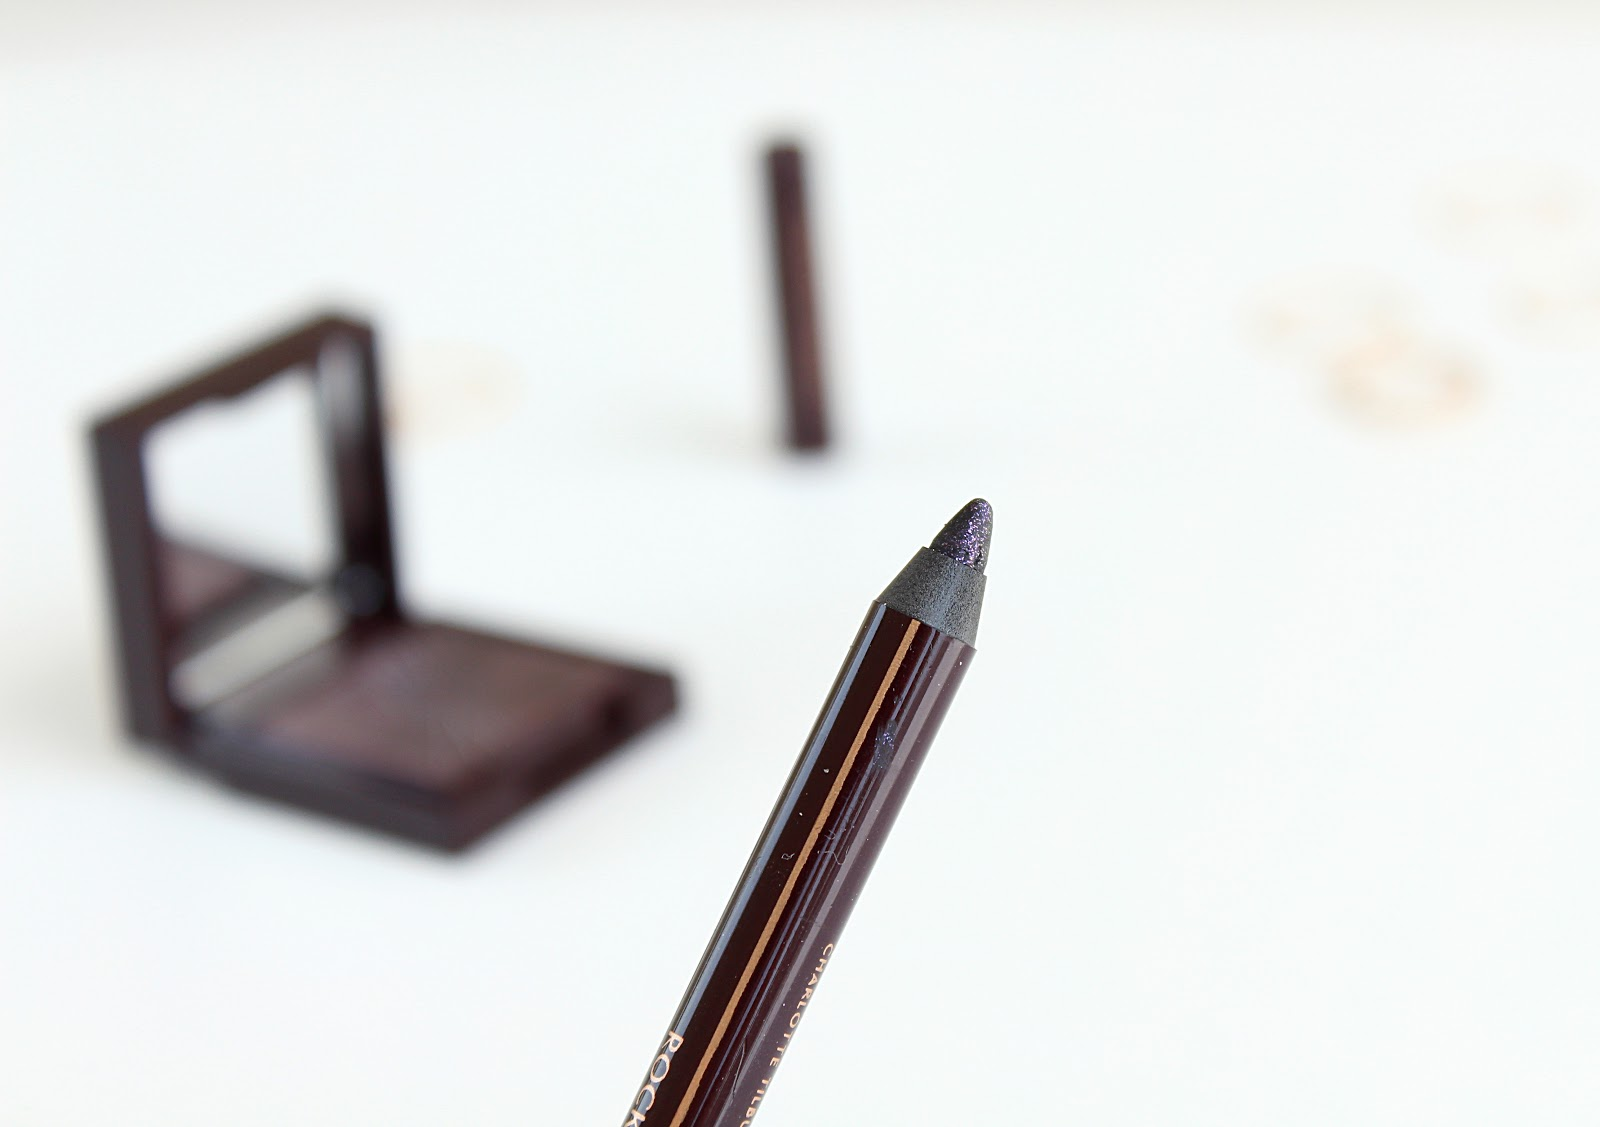 Charlotte Tilbury Nocturnal Cat Eyes To Hypnotise Supernova Review and Swatches, Life in Excess Blog